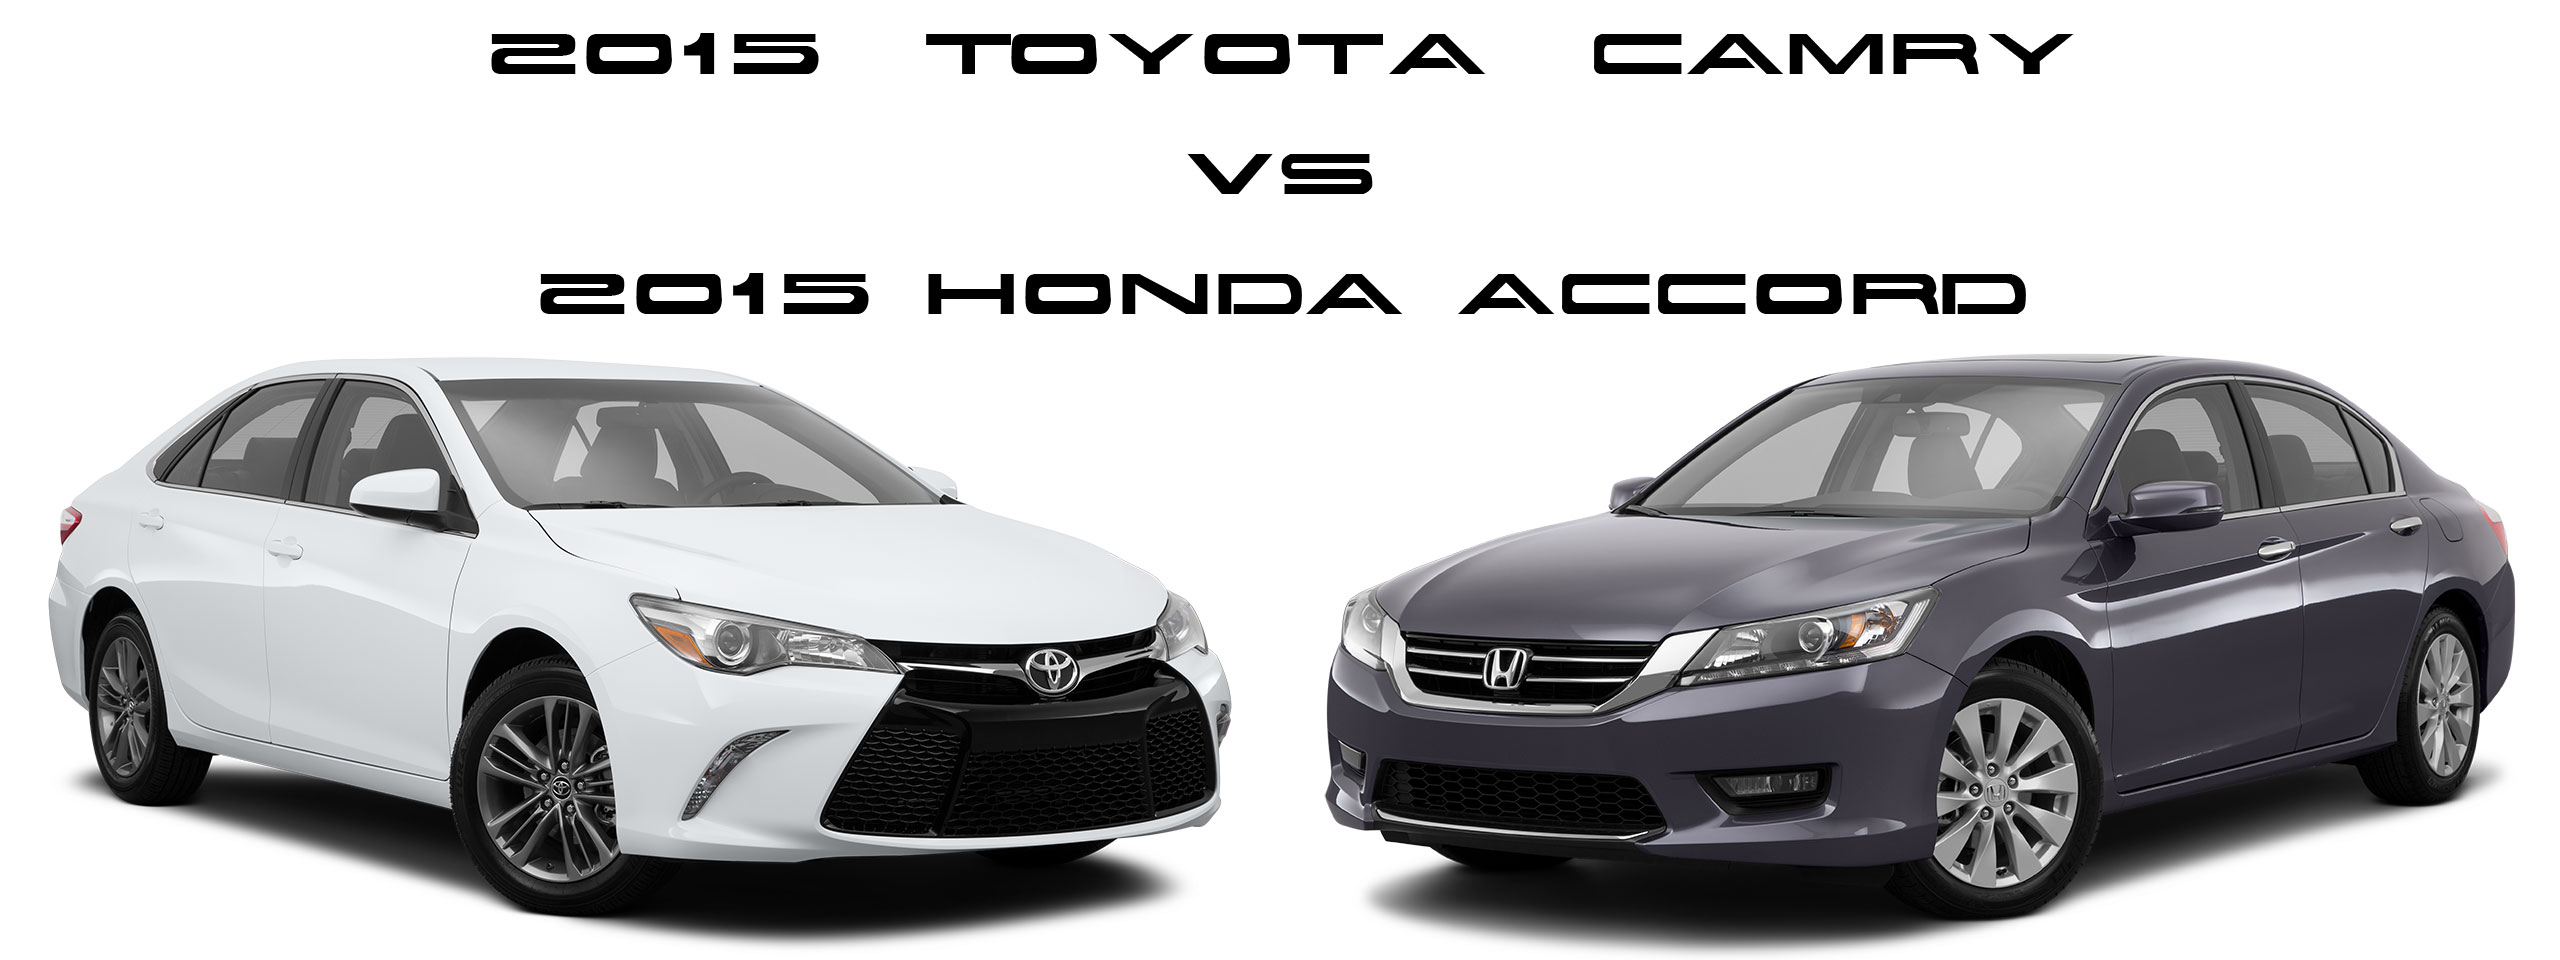 Toyota camry or honda accord 2015 honda accord vs 2015 for Honda accord vs toyota camry 2017